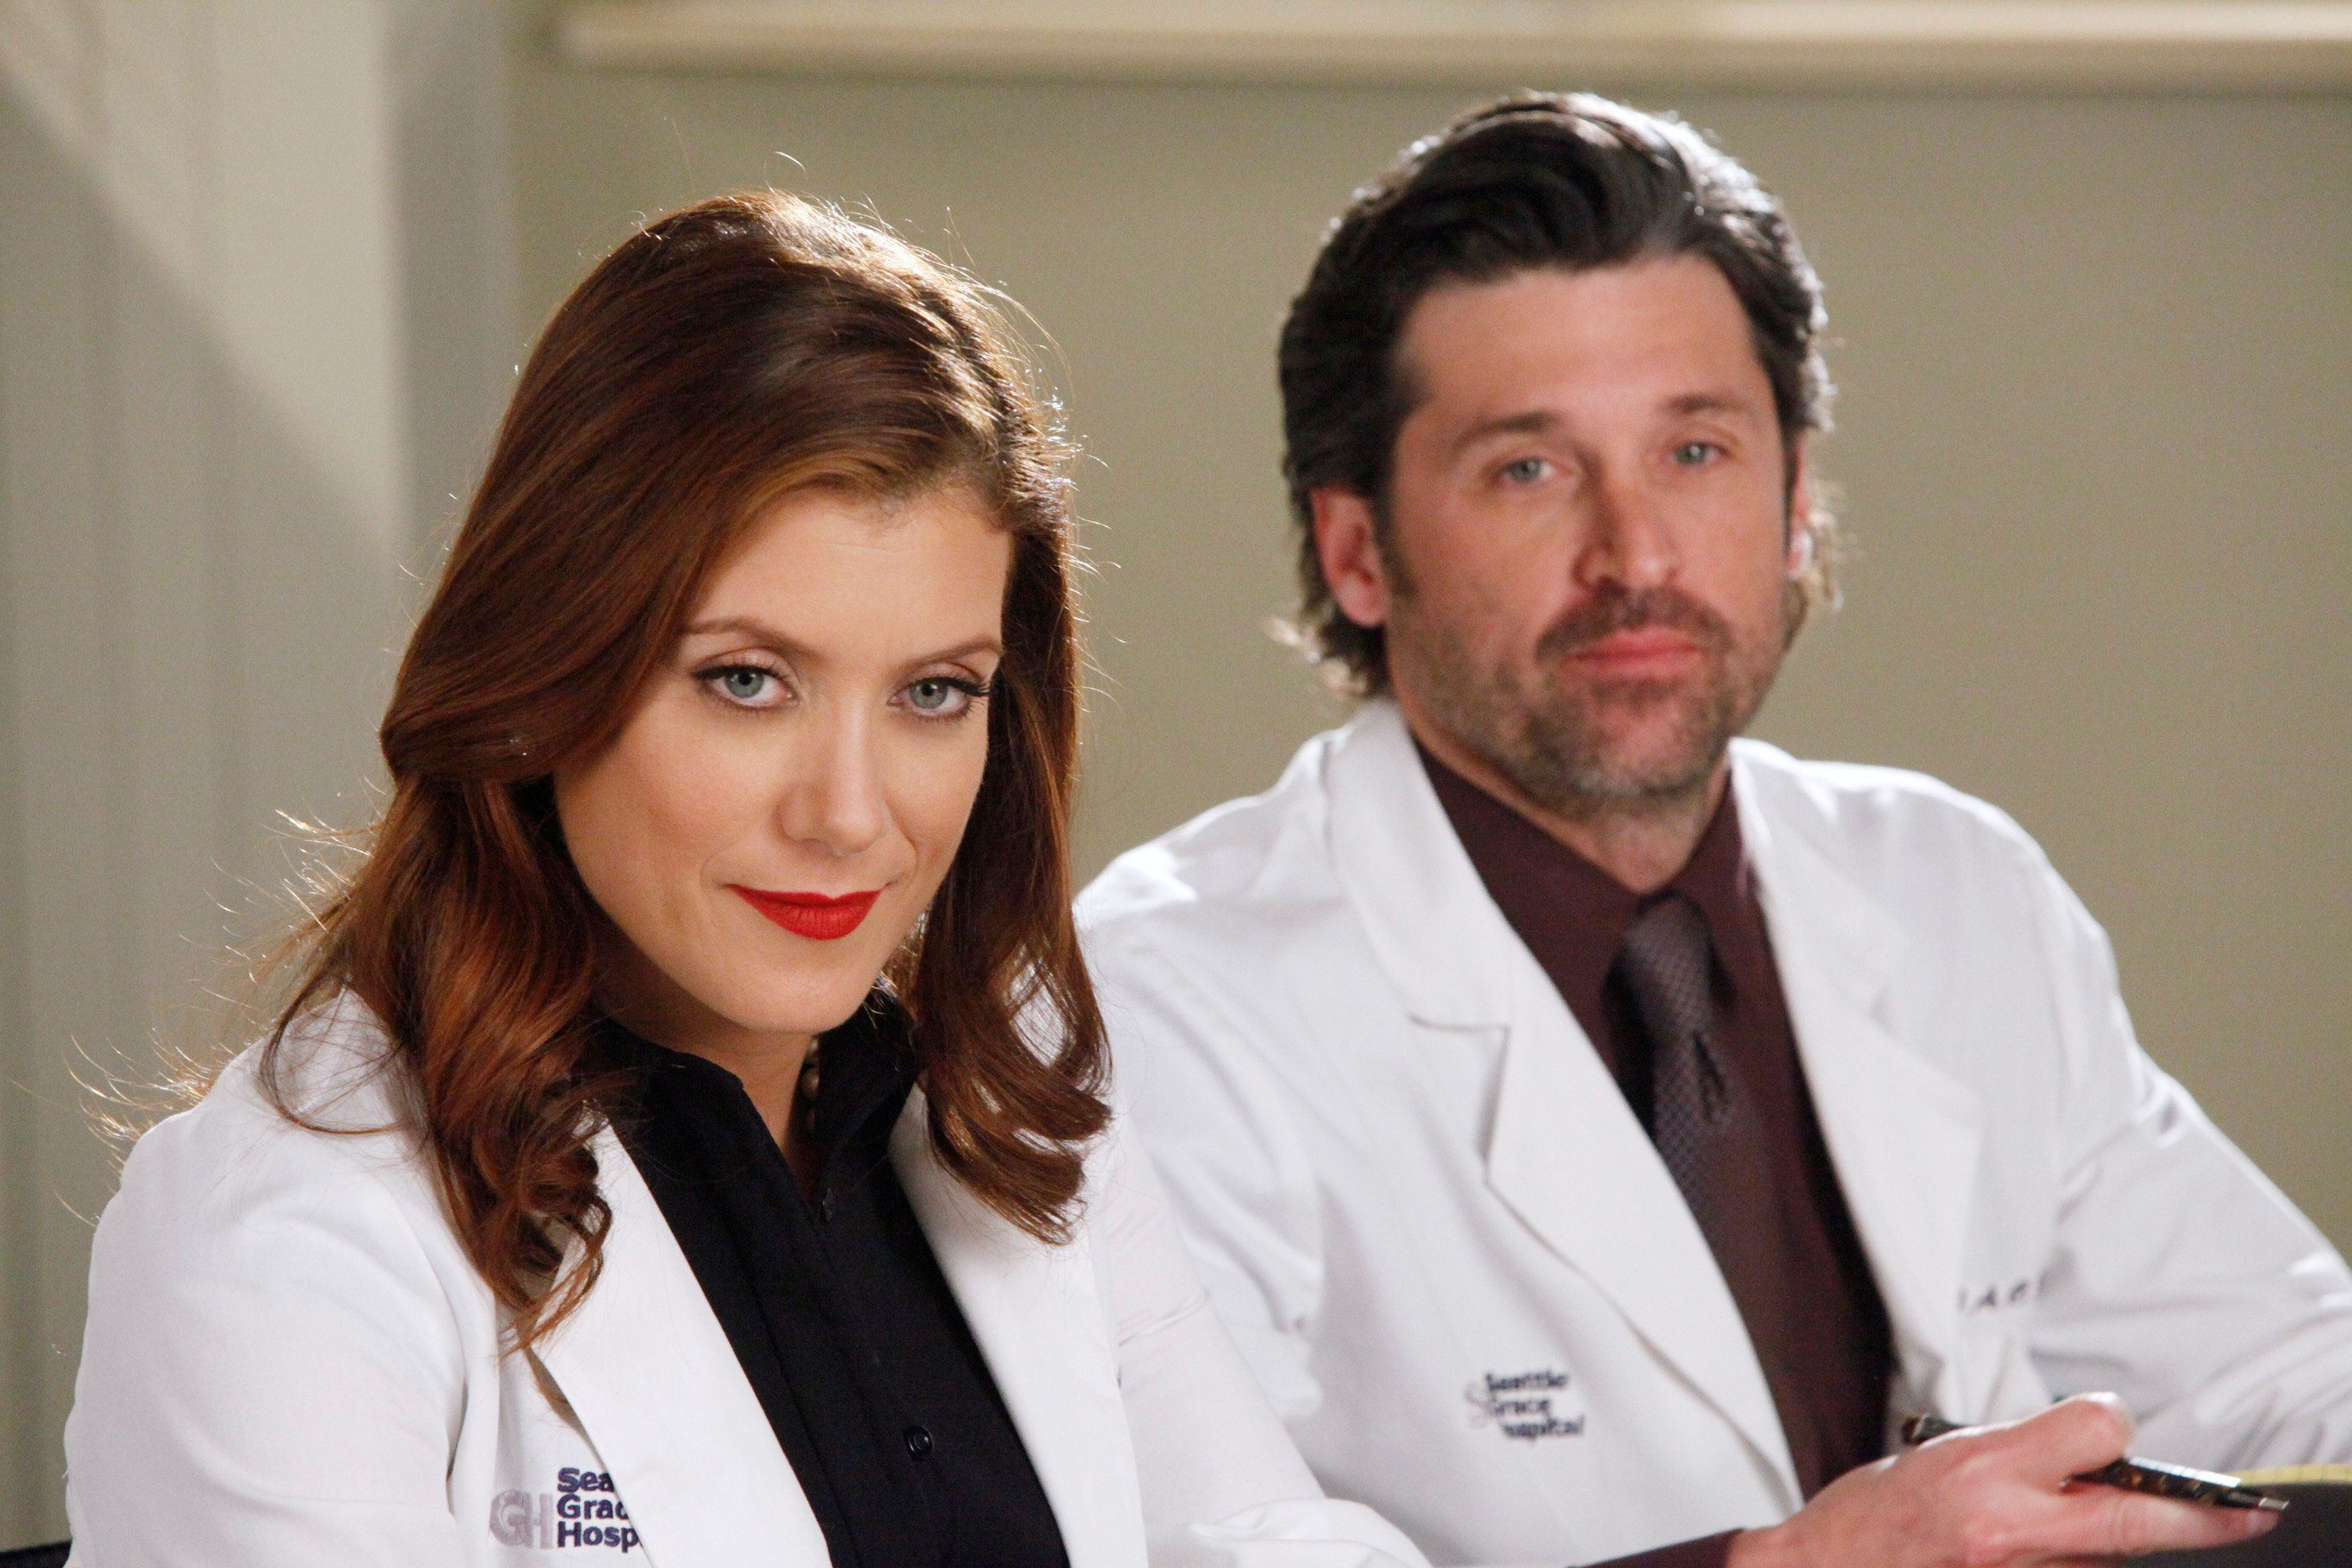 GREY'S ANATOMY - 'If/Then' - As Meredith puts Zola to bed and falls asleep, she begins to wonder -- what if her mother had never had Alzheimer's and she'd had loving, supportive parents? The reverberations of a happy Meredith Grey change the world of Seattle Grace as we know it. What if she had never met Derek in that bar and he had never separated from Addison? What if Callie and Owen had become a couple long before she met Arizona? And what if Bailey never evolved from the meek intern she once was? 'Grey's Anatomy' airs THURSDAY, FEBRUARY 2 (9:00-10:02 p.m., ET) on the ABC Television Network. (Photo by Vivian Zink/ABC via Getty Images) KATE WALSH, PATRICK DEMPSEY